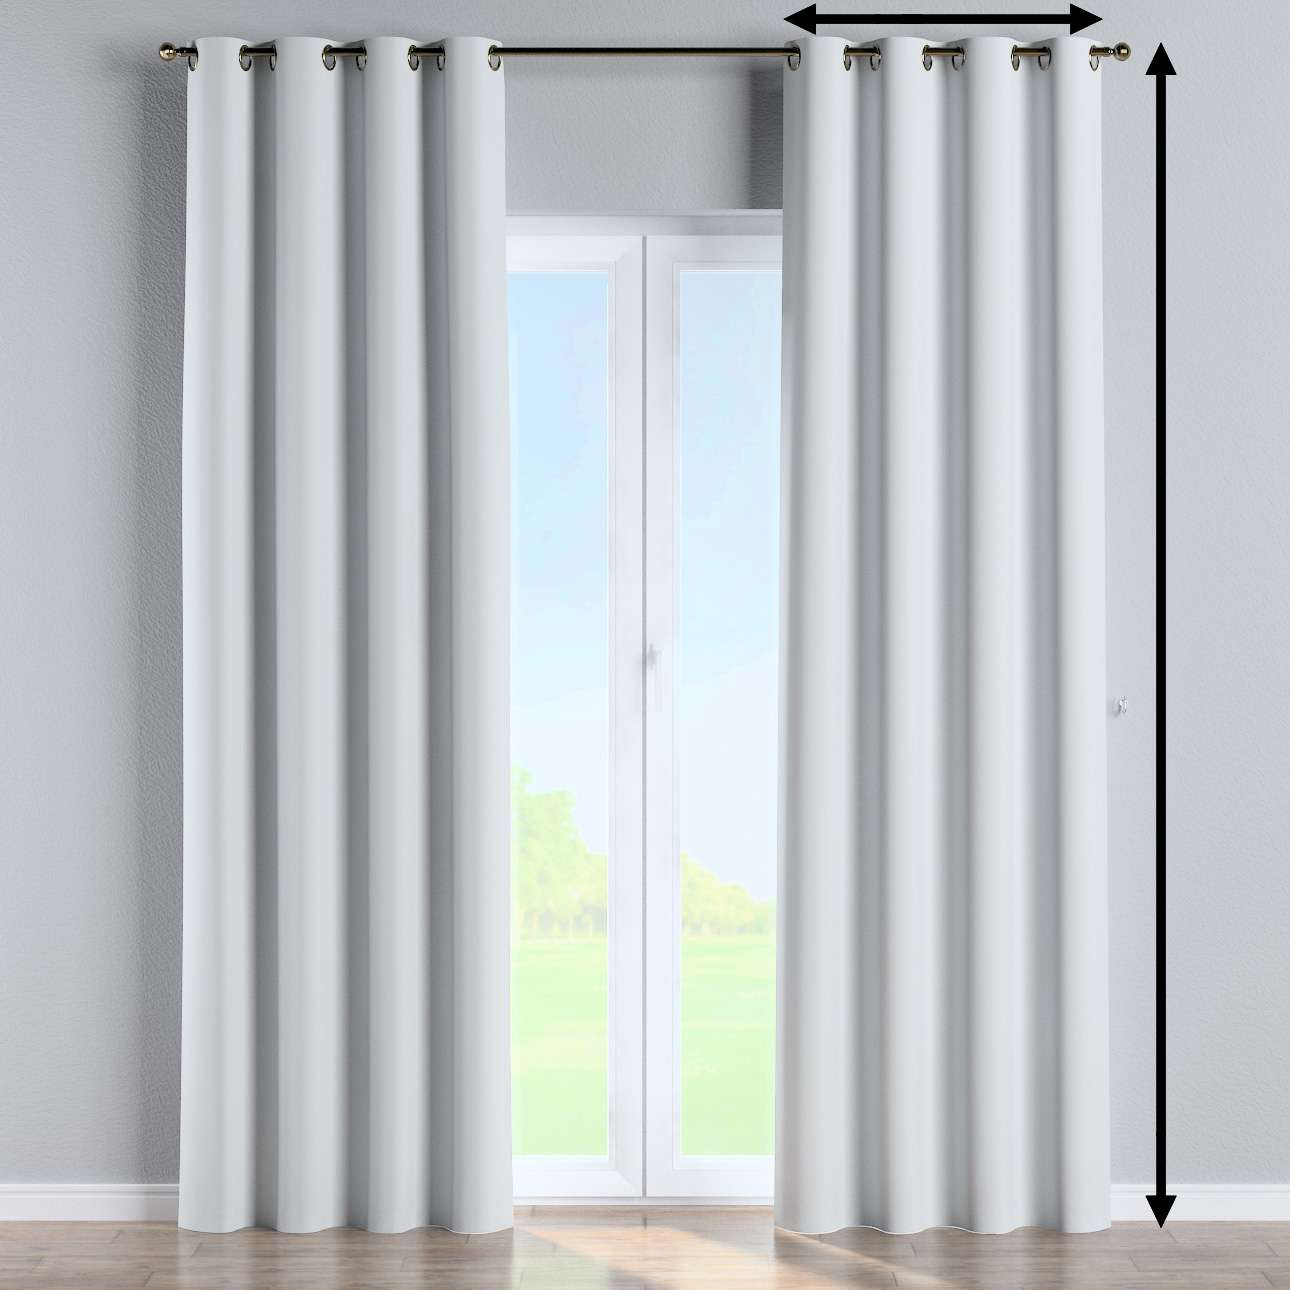 Blackout eyelet curtain in collection Blackout 280 cm, fabric: 269-05